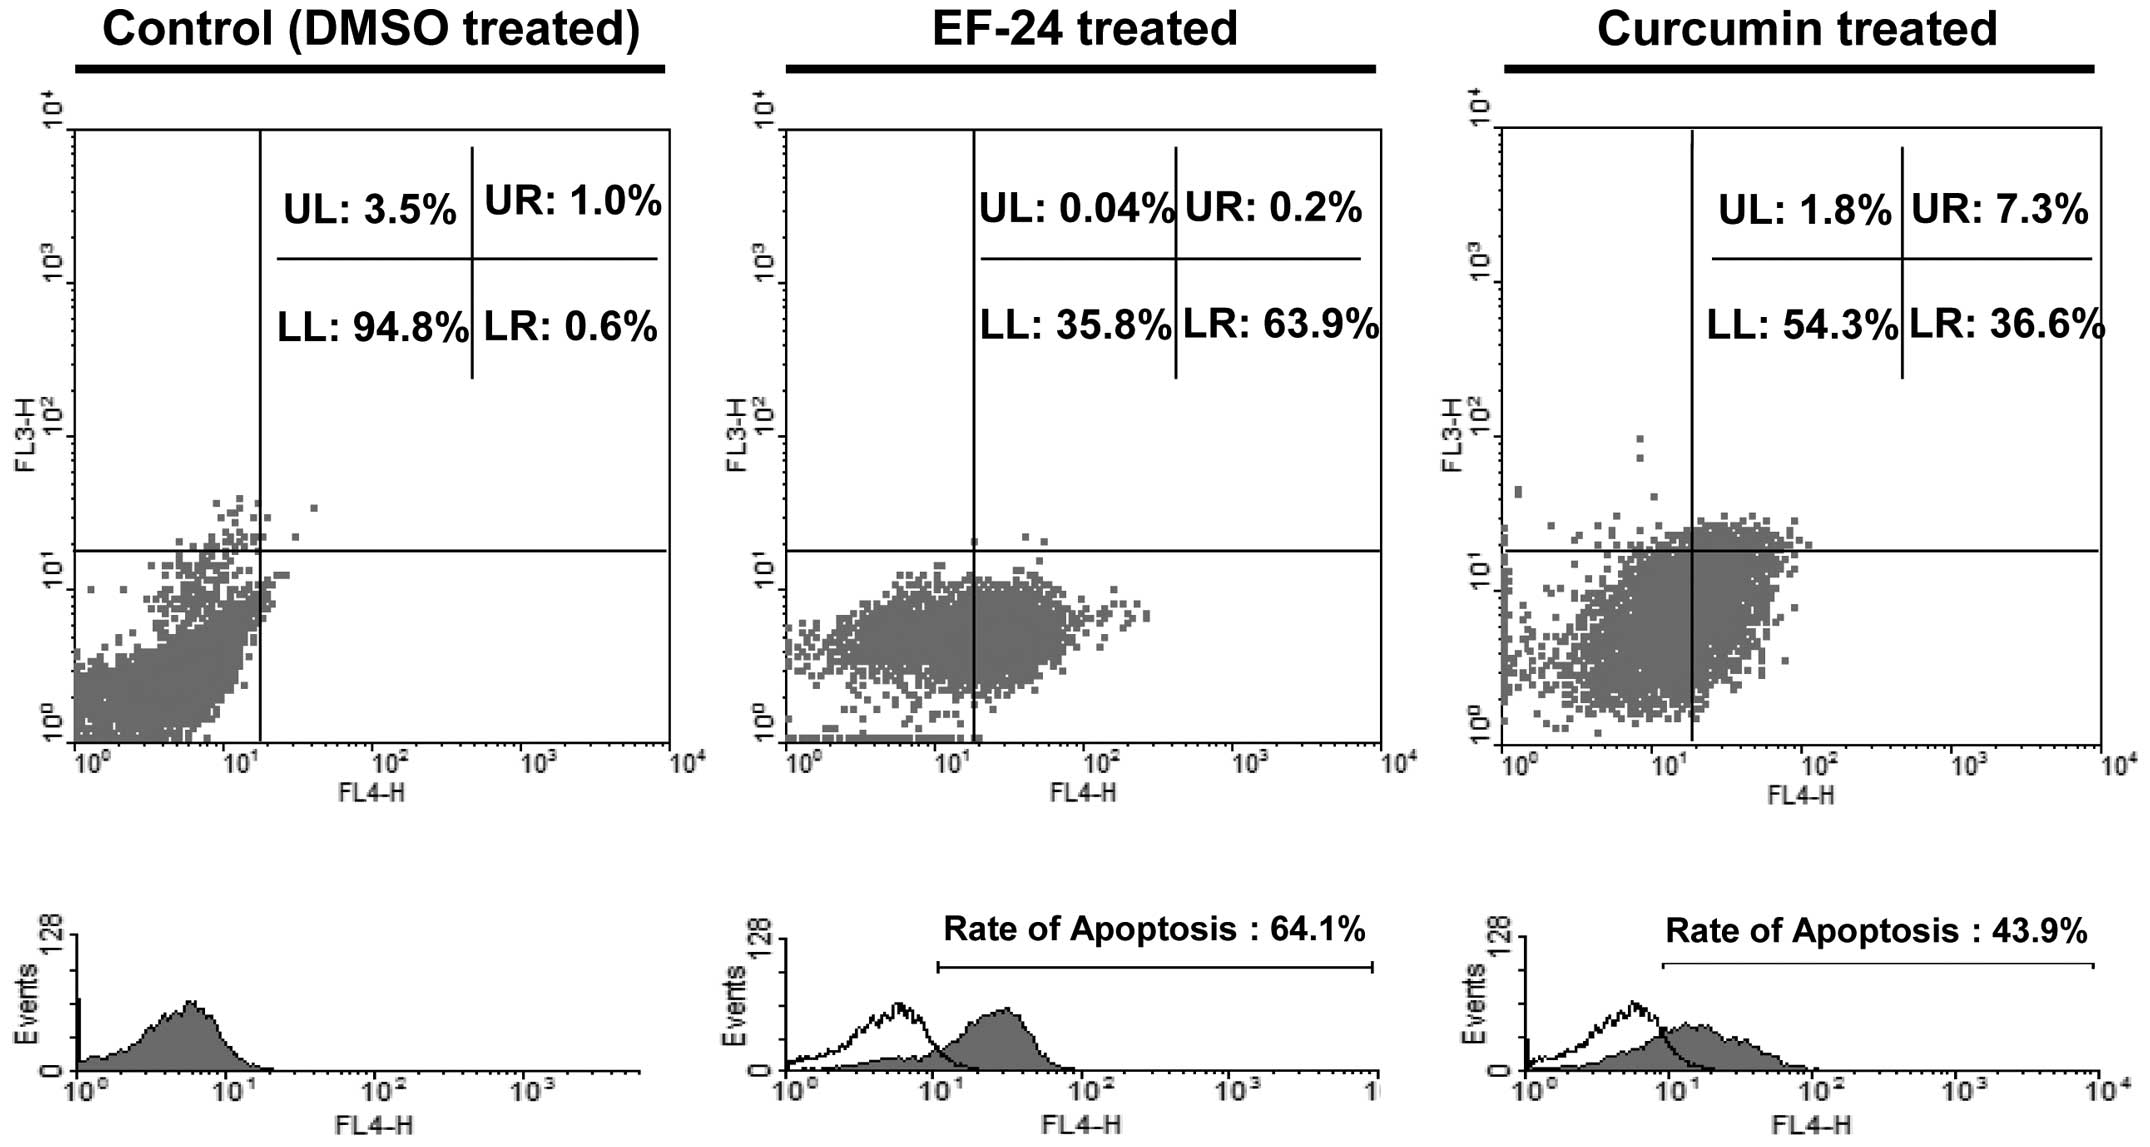 ffe8a639b9e5 Apoptotic population induction of Saos2 cells by EF-24 and curcumin. To  identify the EF-24- or curcumin-induced Saos2 cell apoptosis